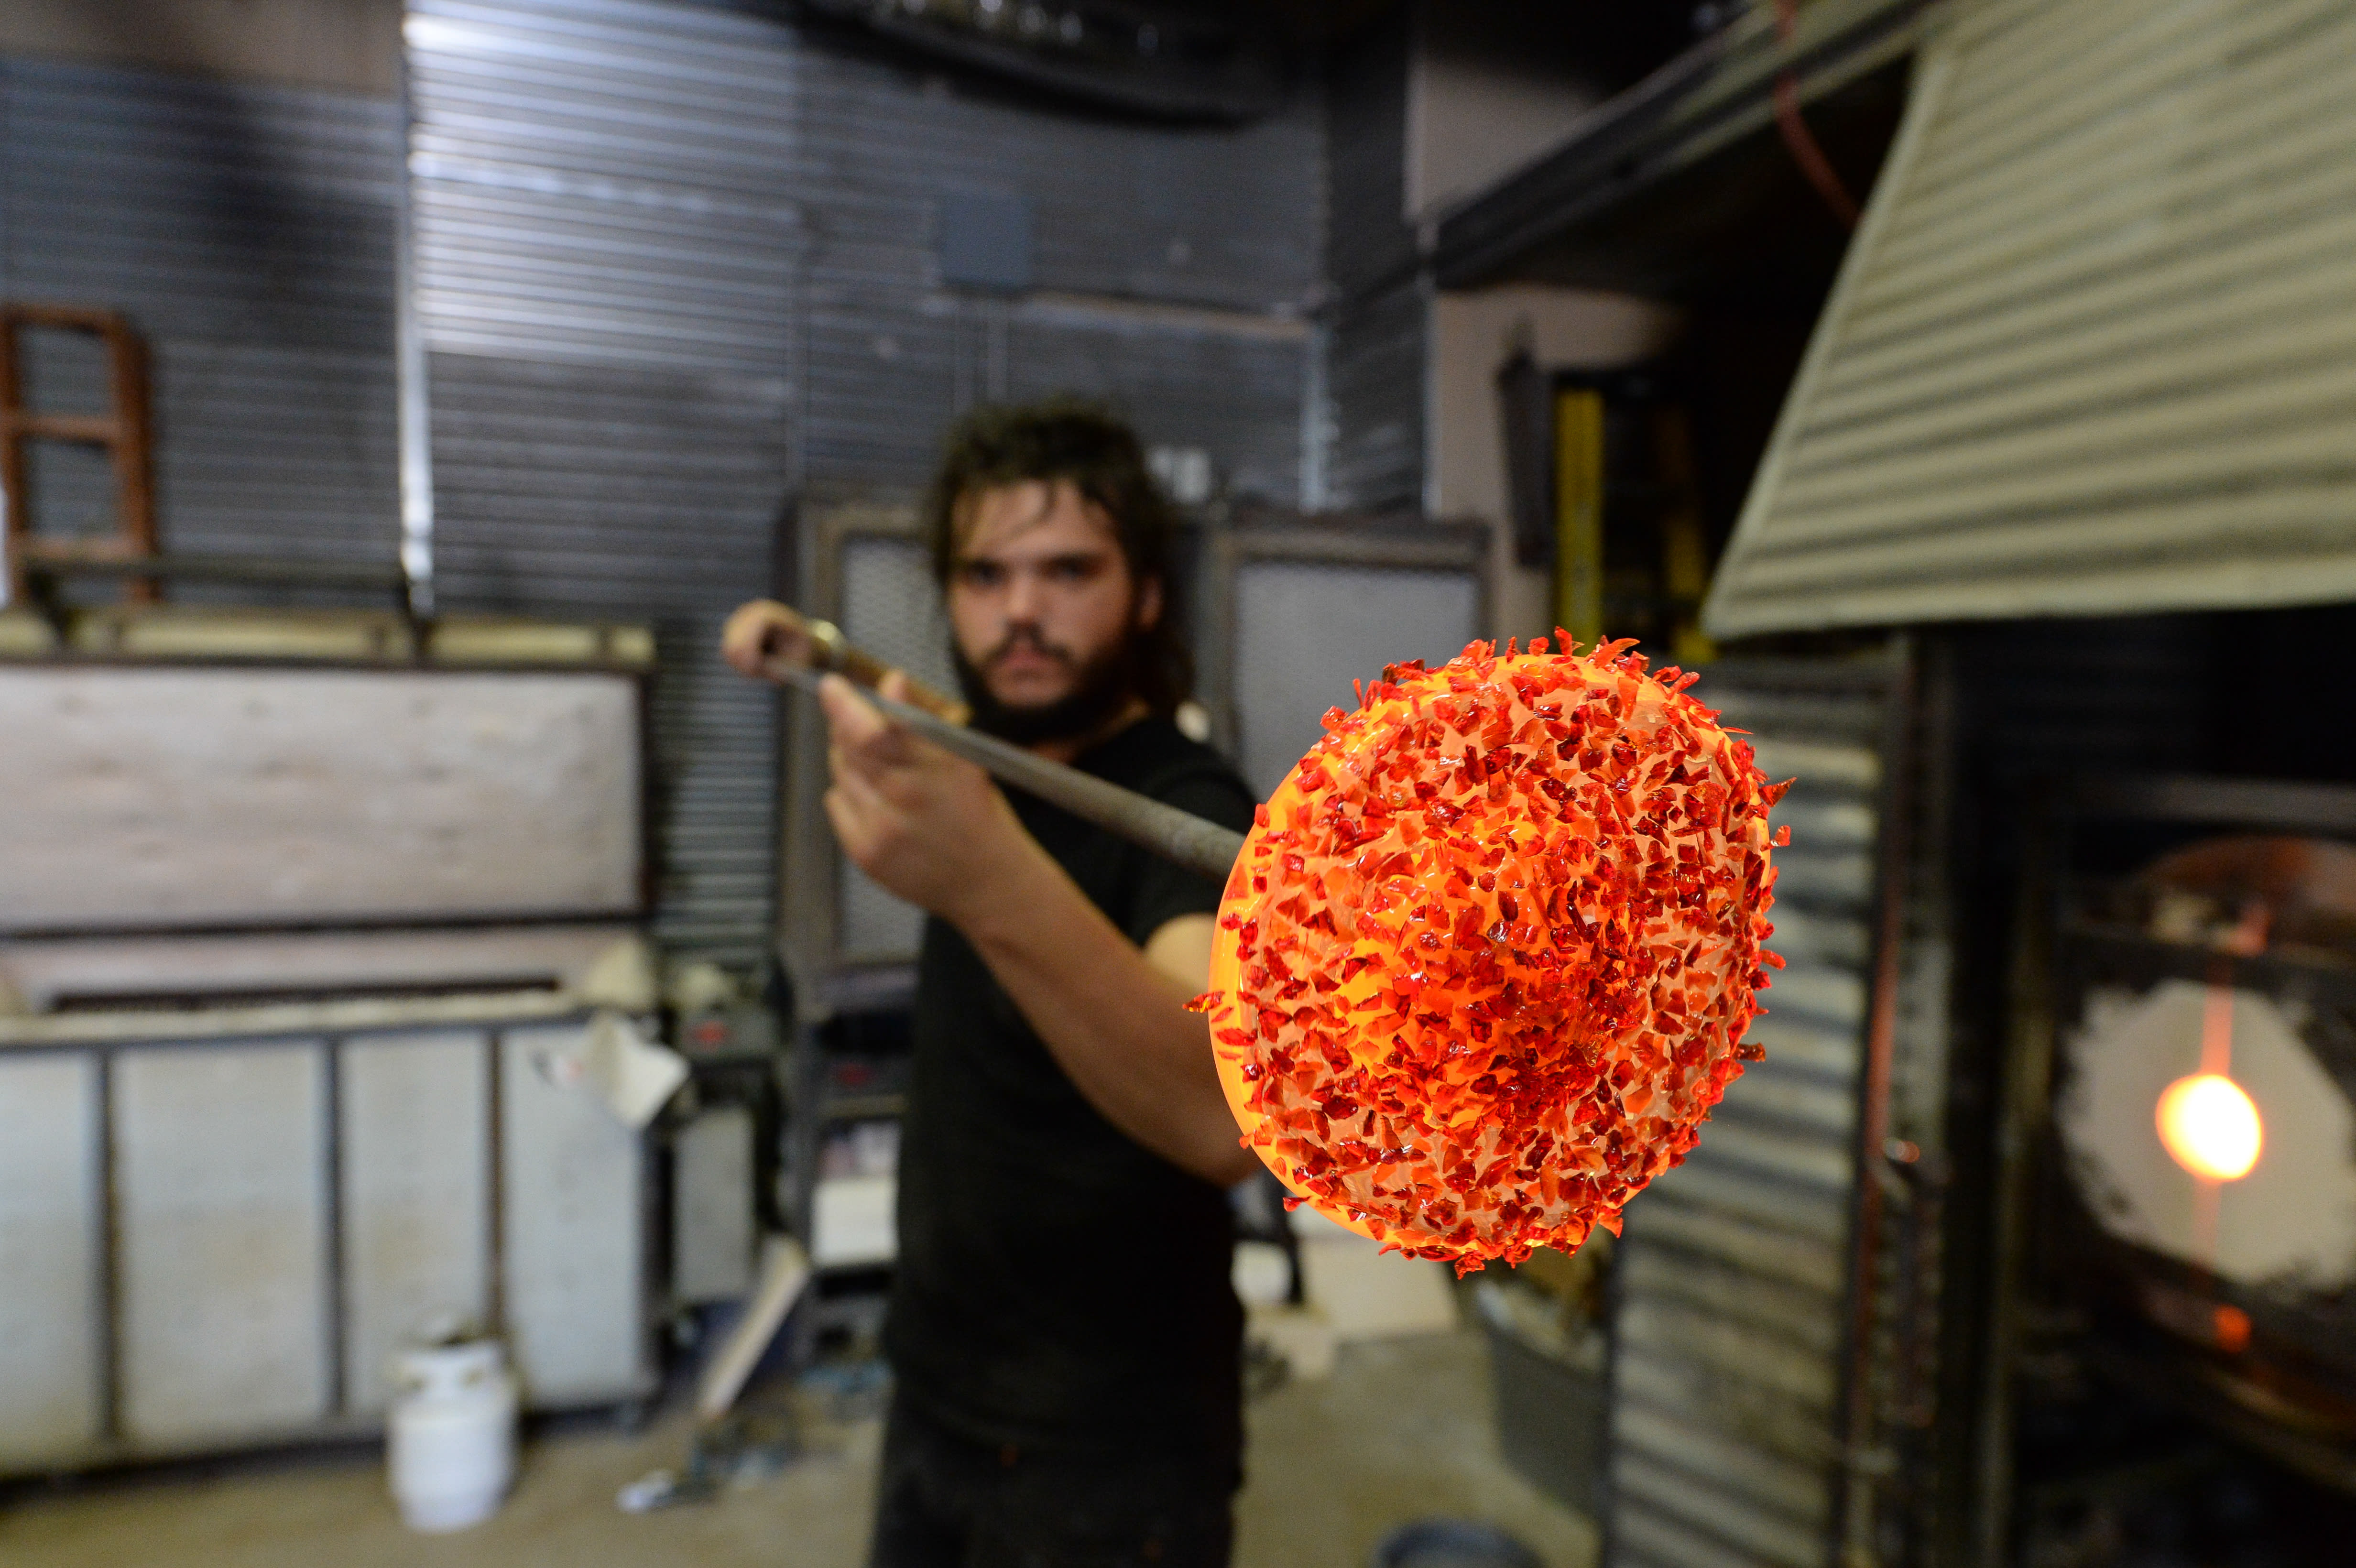 Vetro Glassblowing